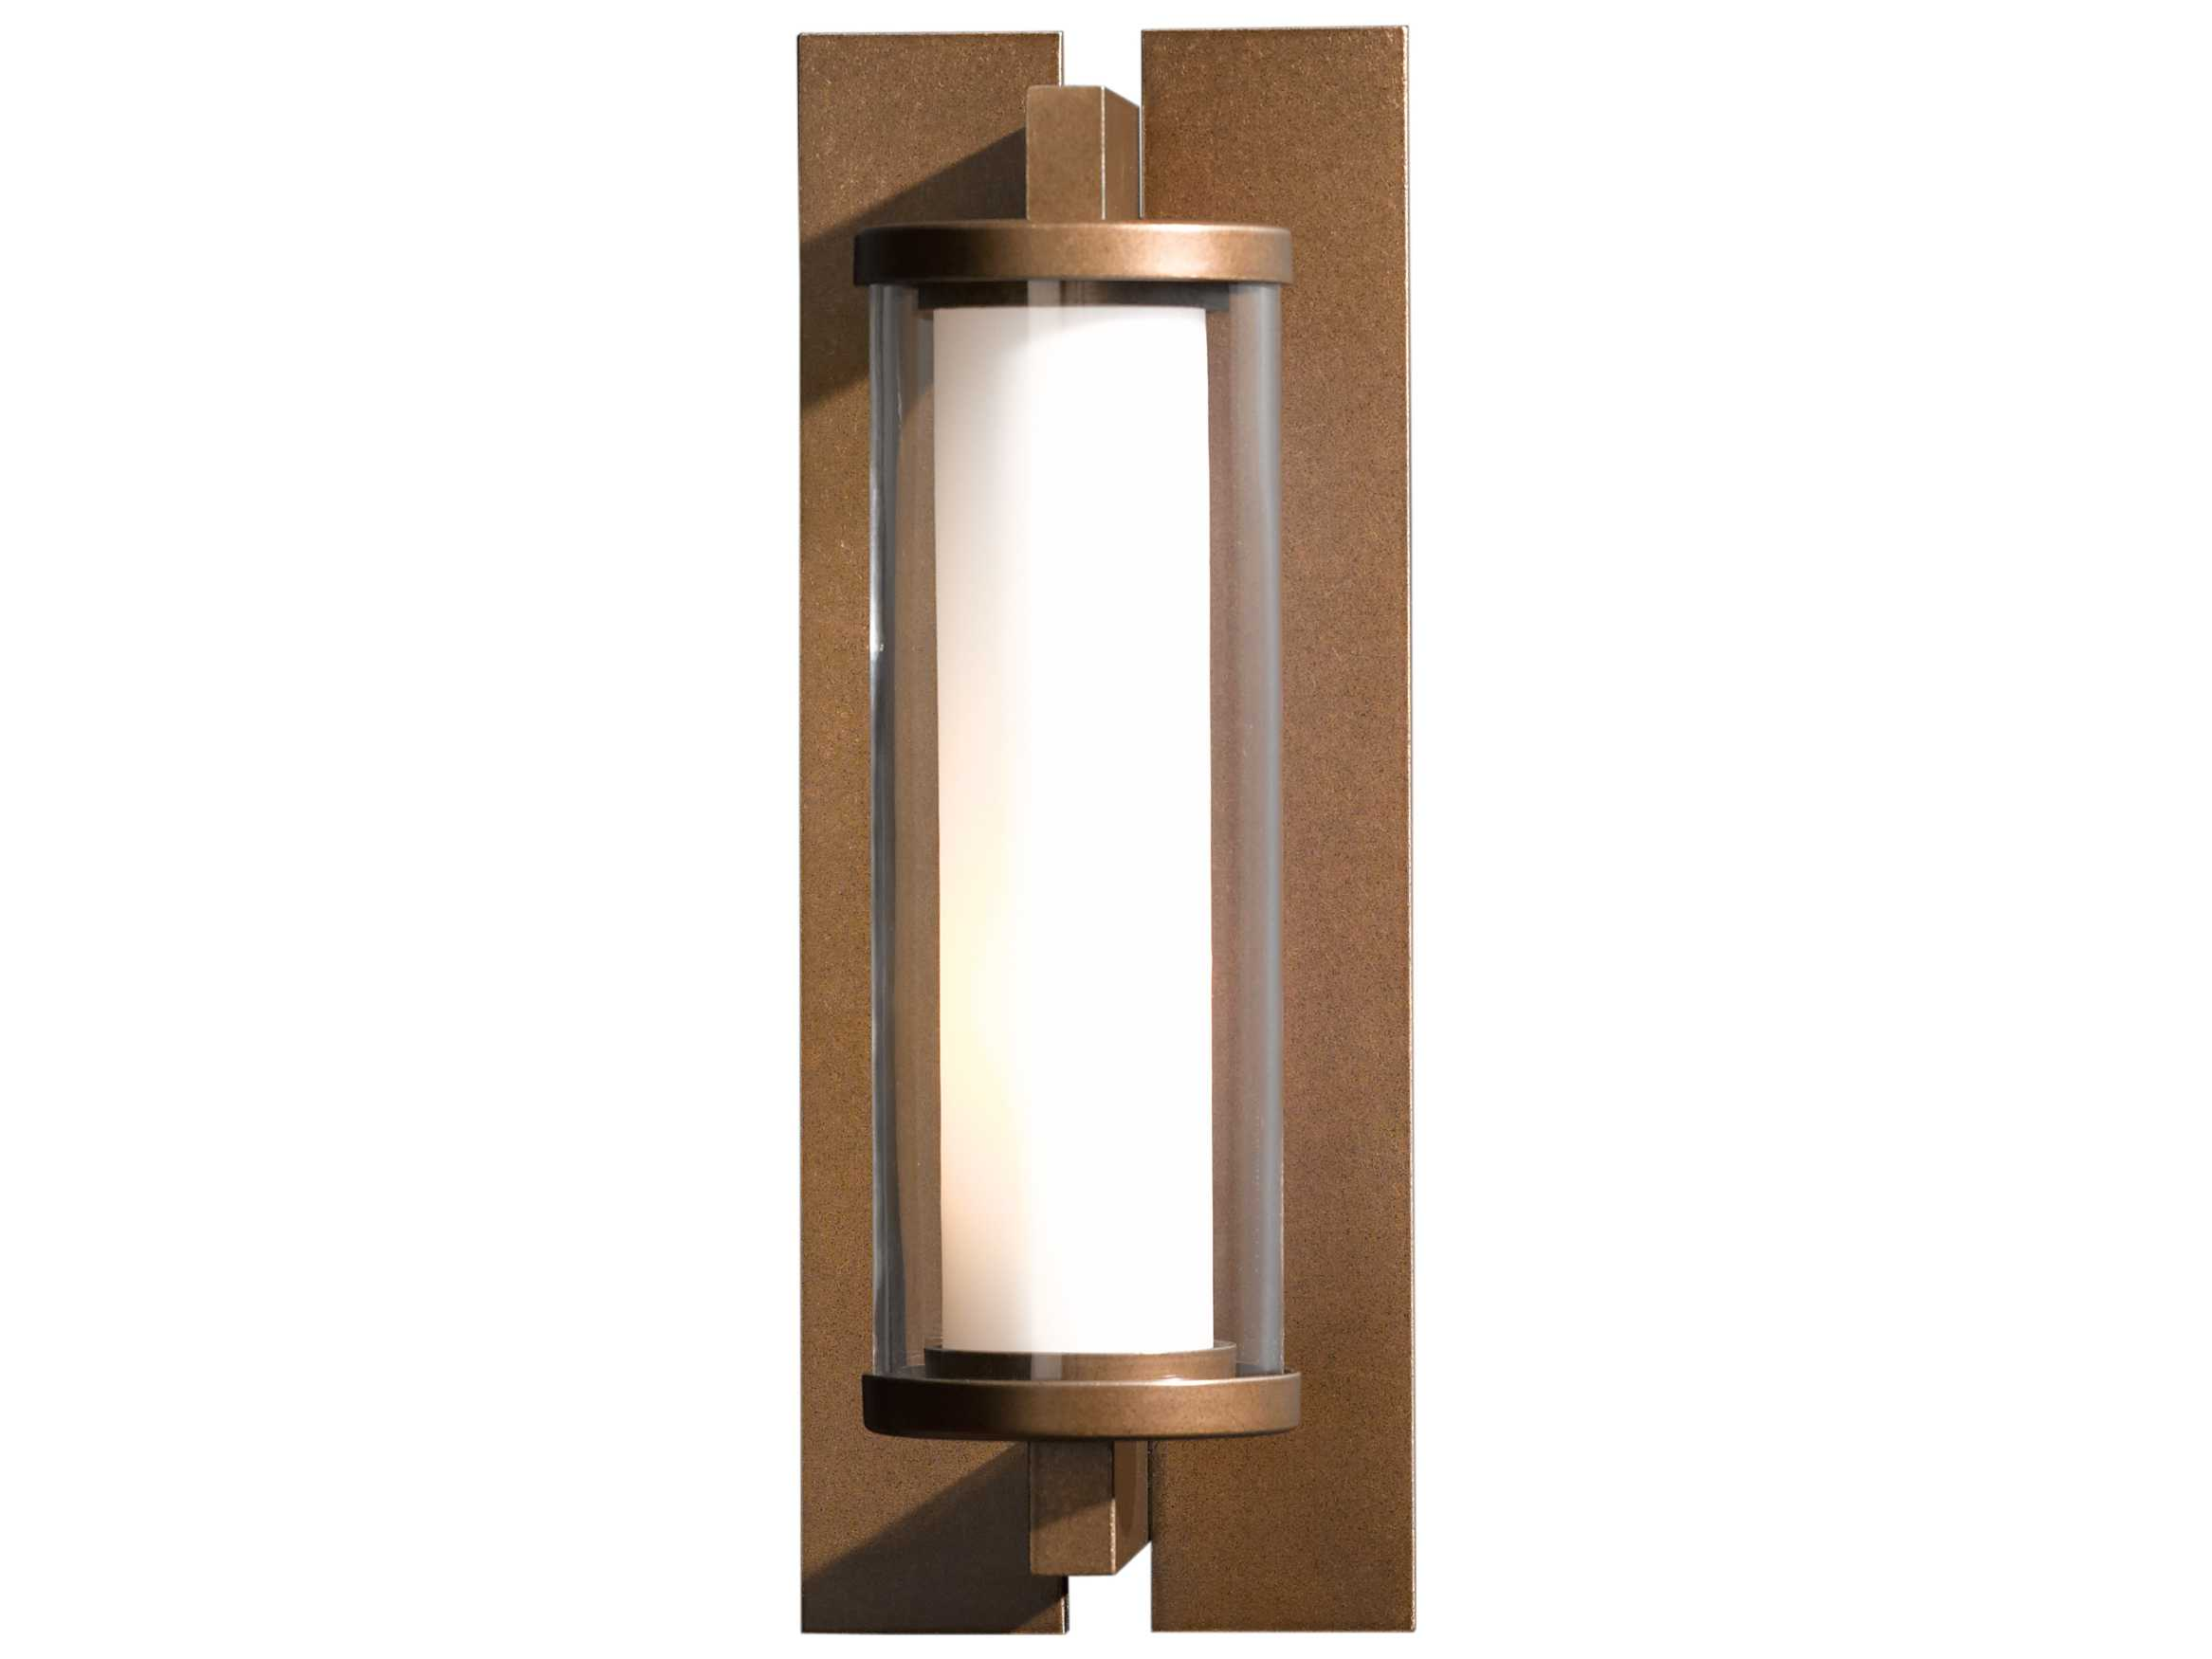 Hubbardton Forge Fuse Incandescent Outdoor Wall Light 306450 Zm393